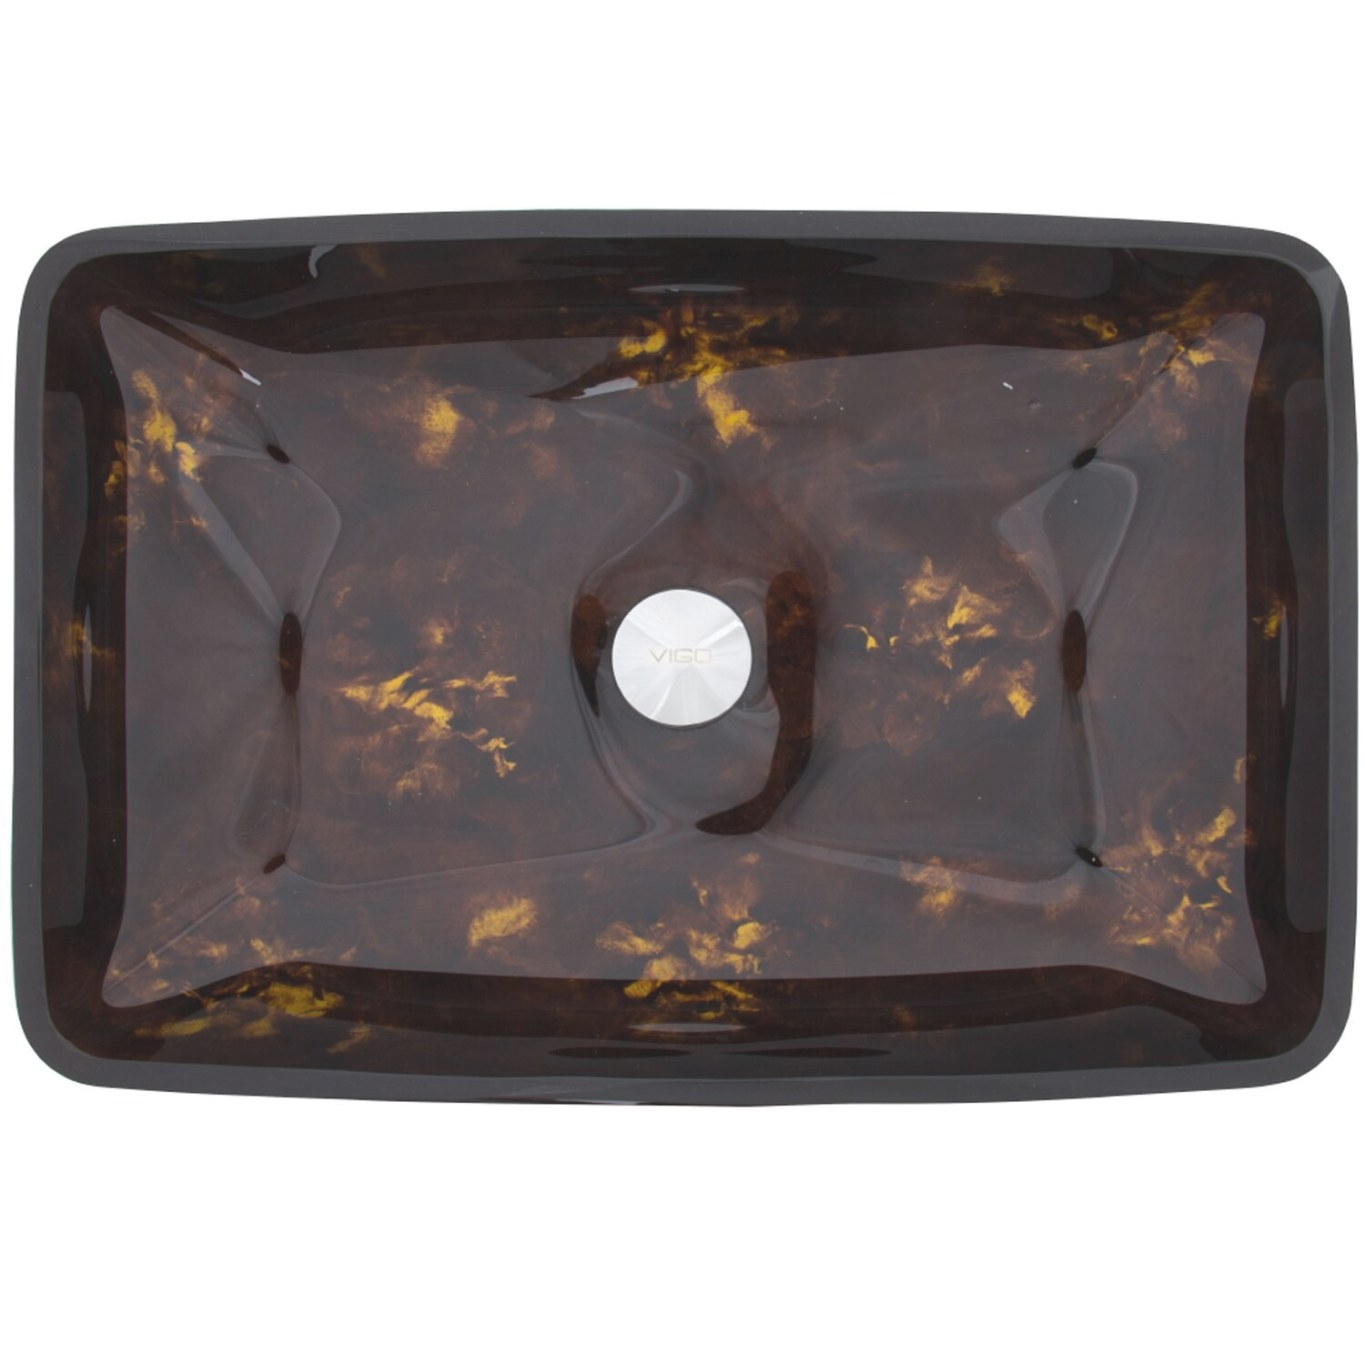 Vigo Rectangular Brown And Gold Fusion Glass Vessel in Brown And Gold Bathroom